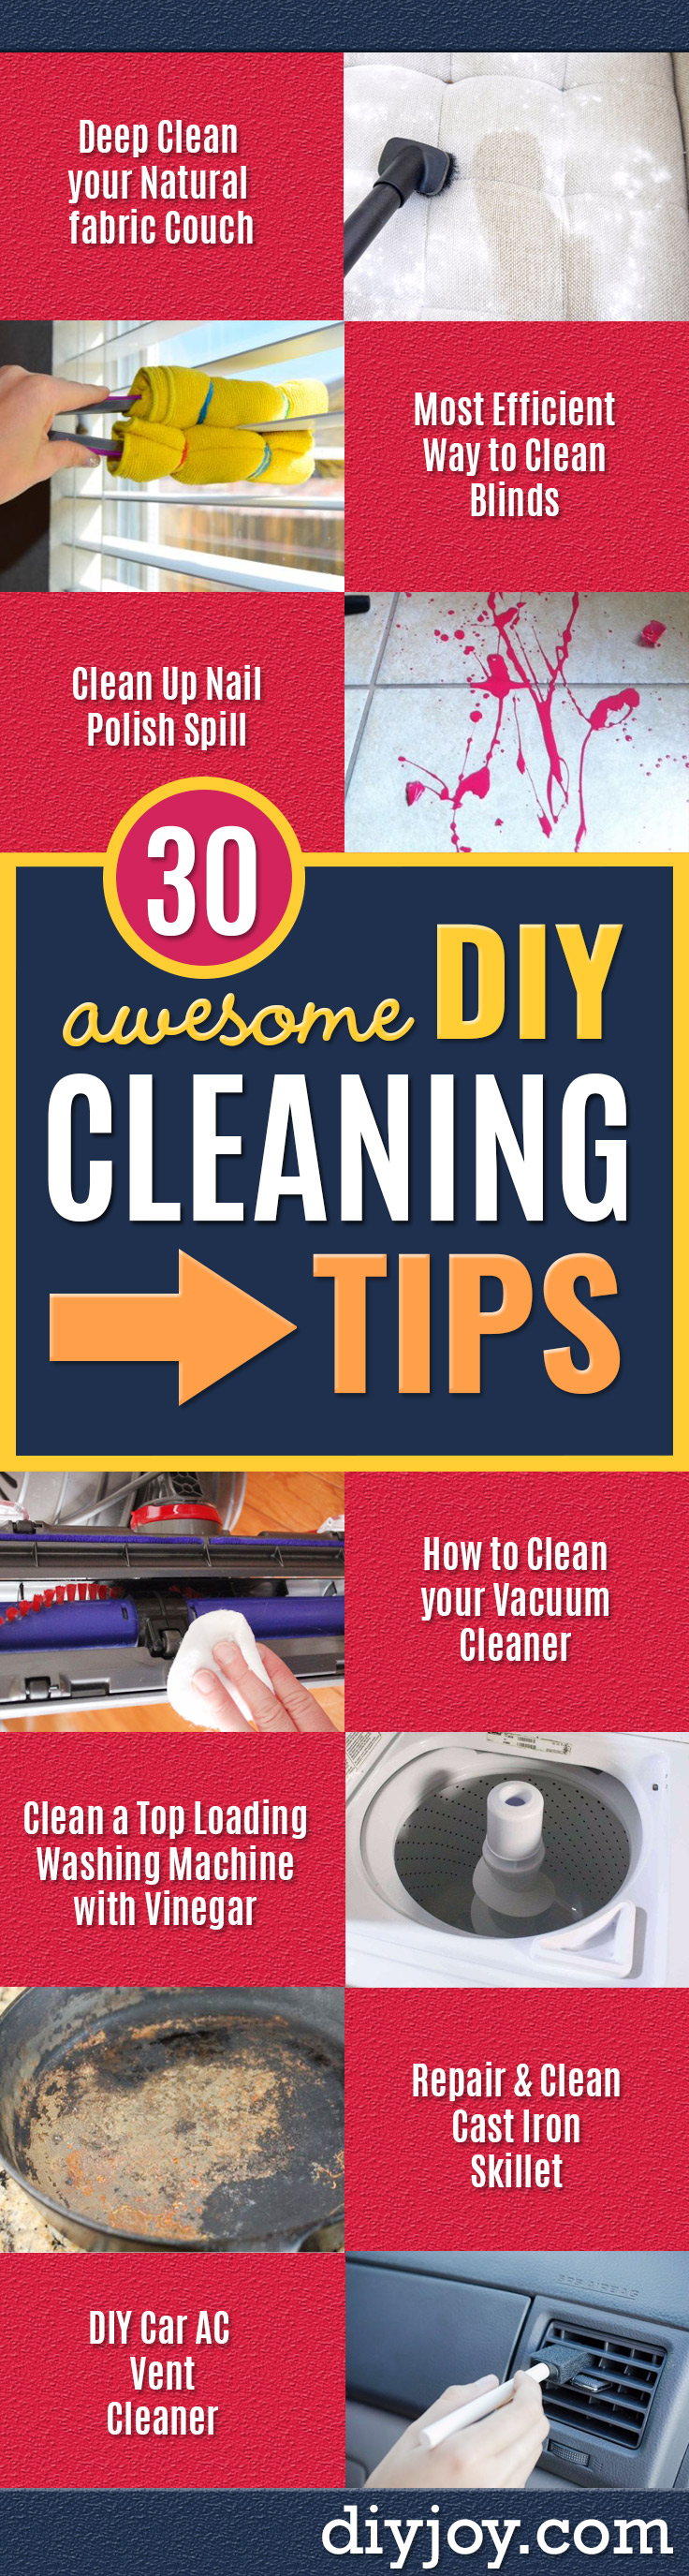 cleaning tips and tricks diy - Best DIY Cleaning Hacks, Recipes and Tutorials - Daily Ways to Clean For Kitchen, For Couches, Bathroom, Bedroom, Laundry, Floors, Furniture, Windows, Cleaners and More for Cleaning Your Home- Quick Ideas for Lazy People - Cool Cleaning Hack Tutorial